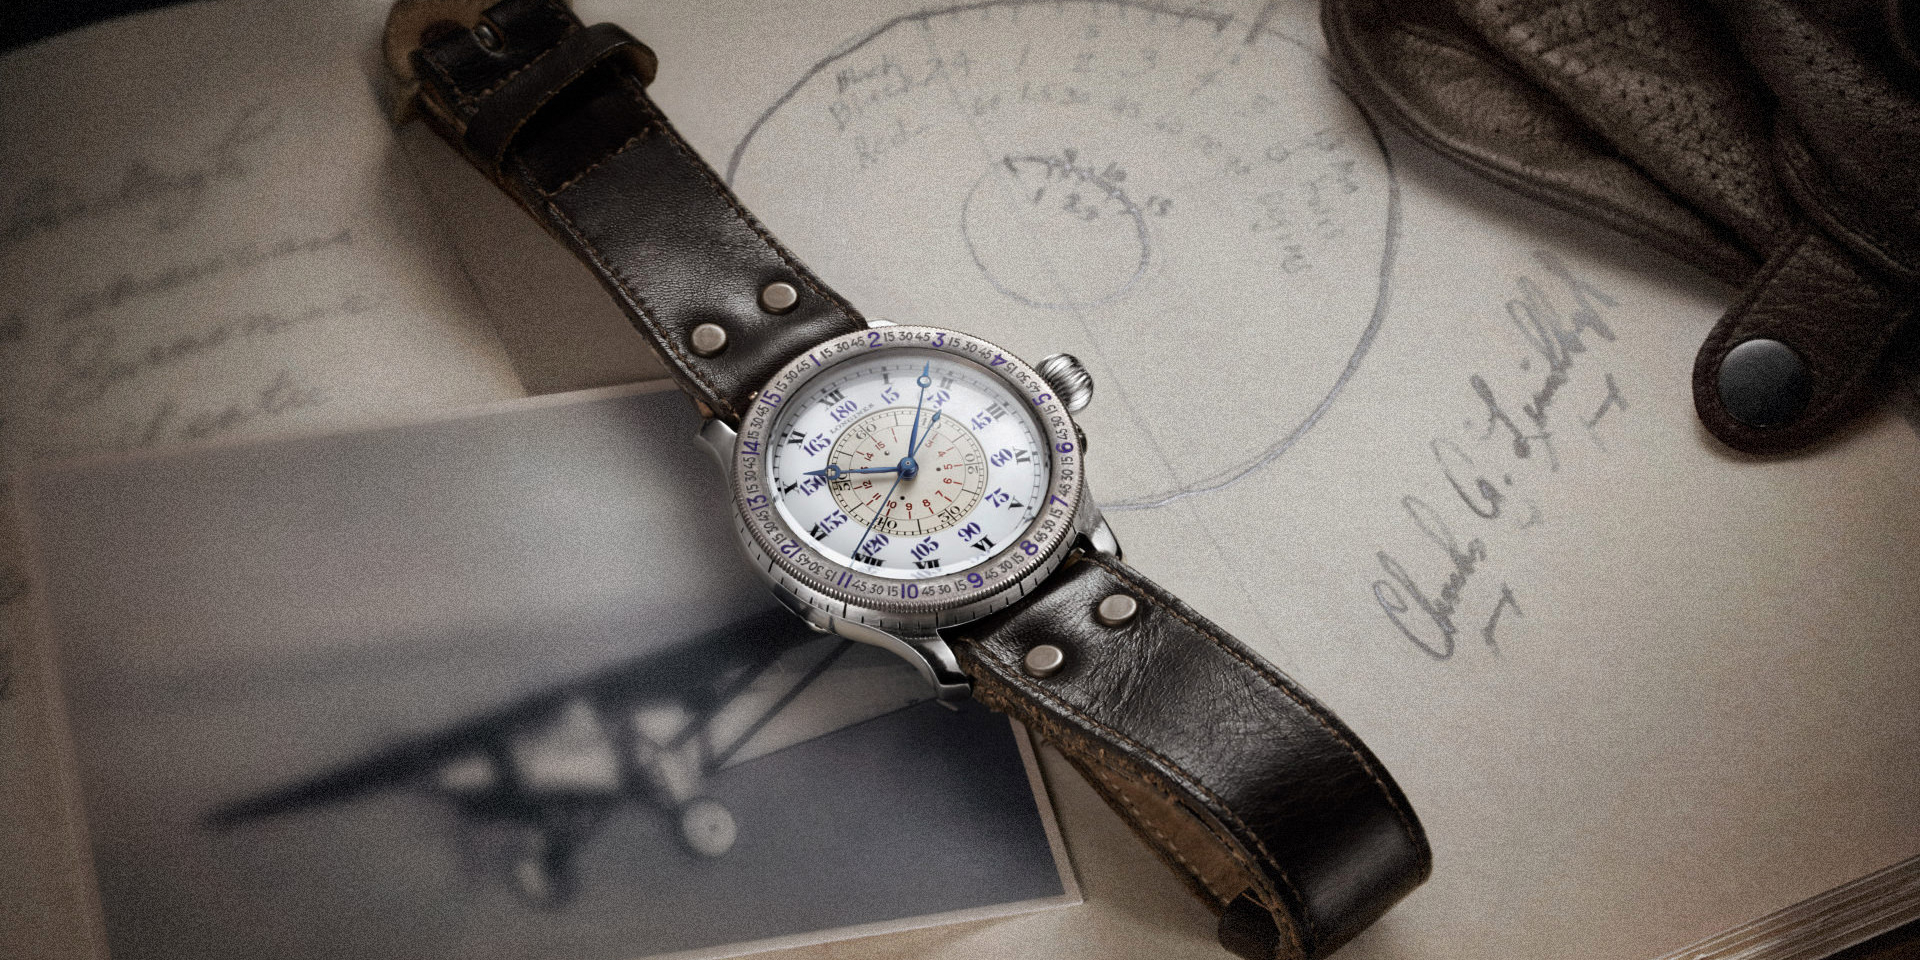 6 Myths and Misconceptions about Longines